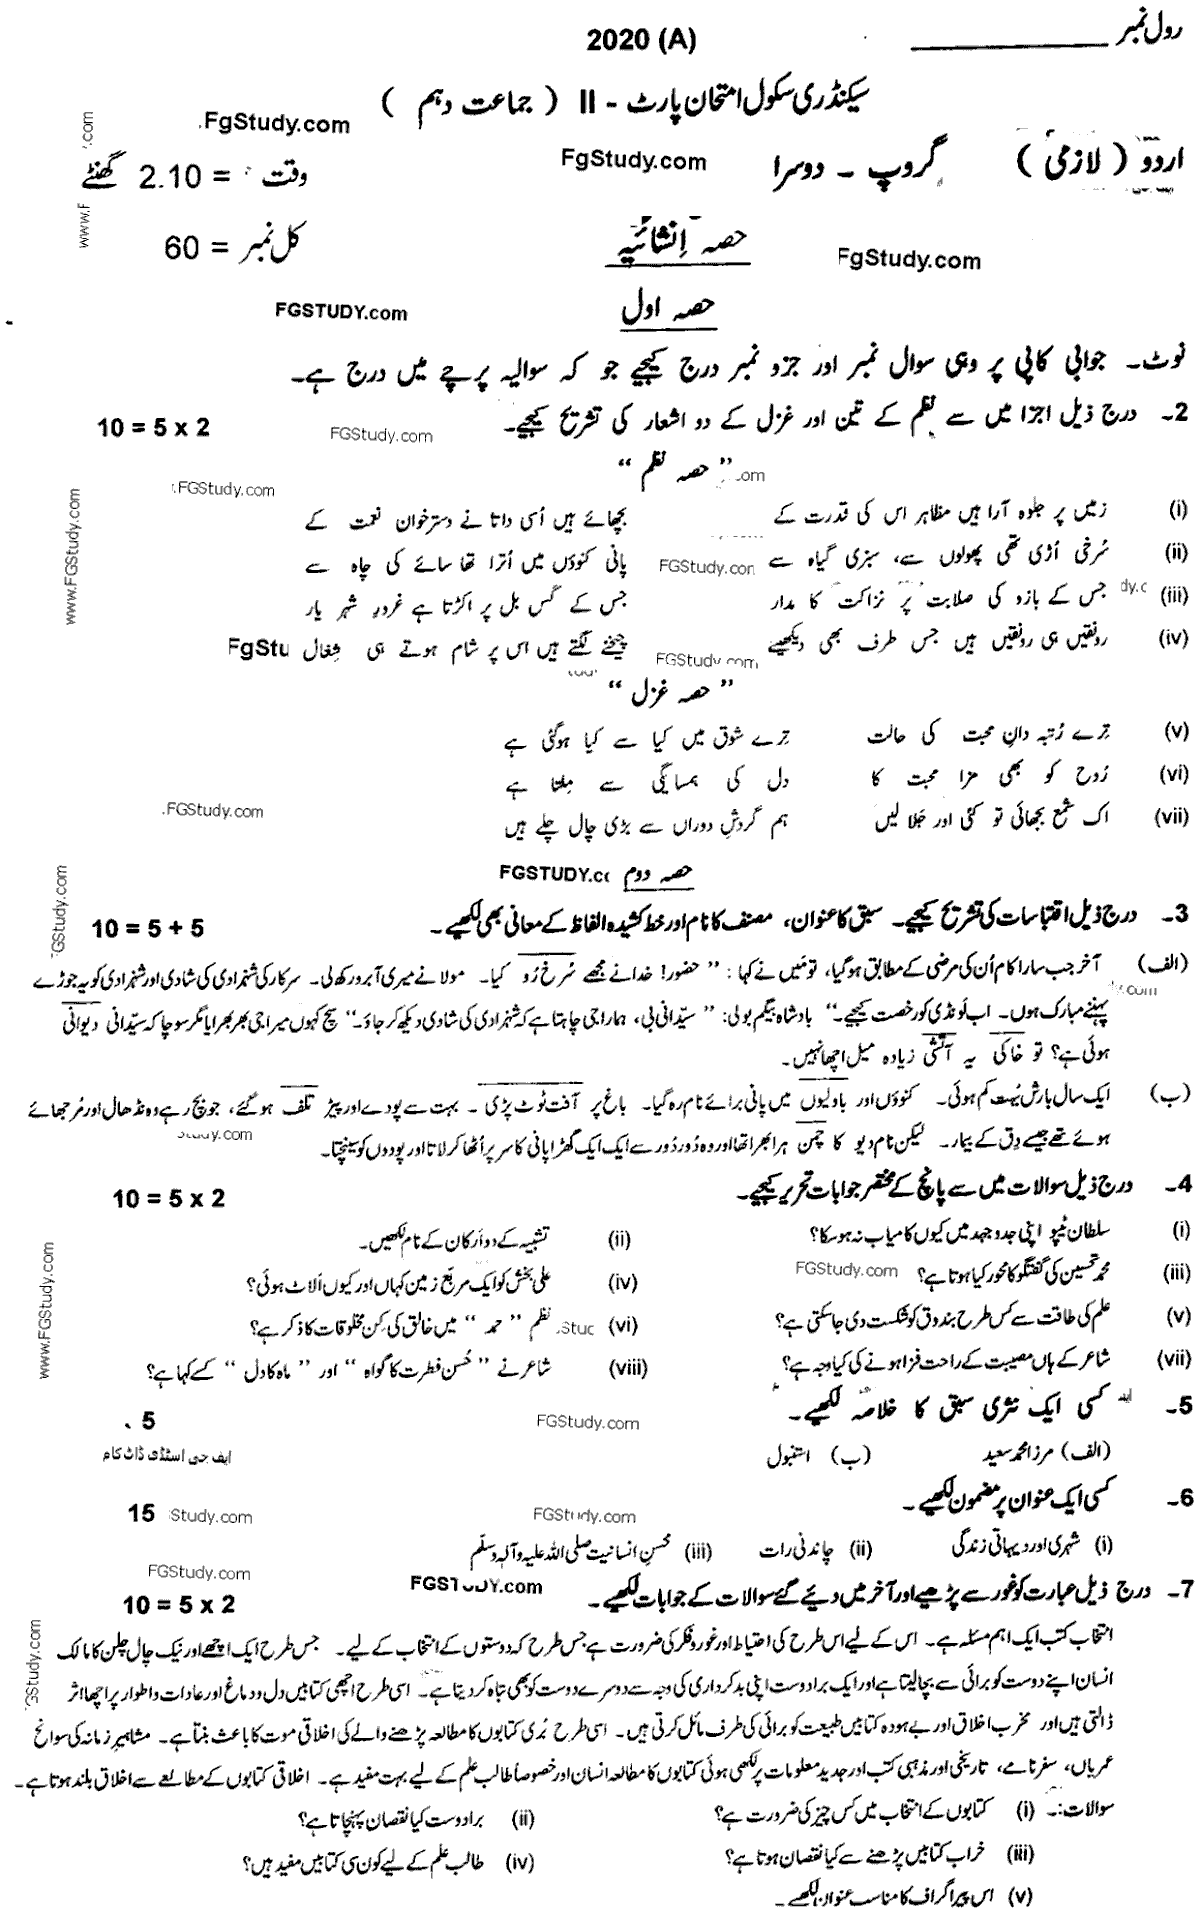 Urdu Group 2 Subjective 10th Class Past Papers 2020